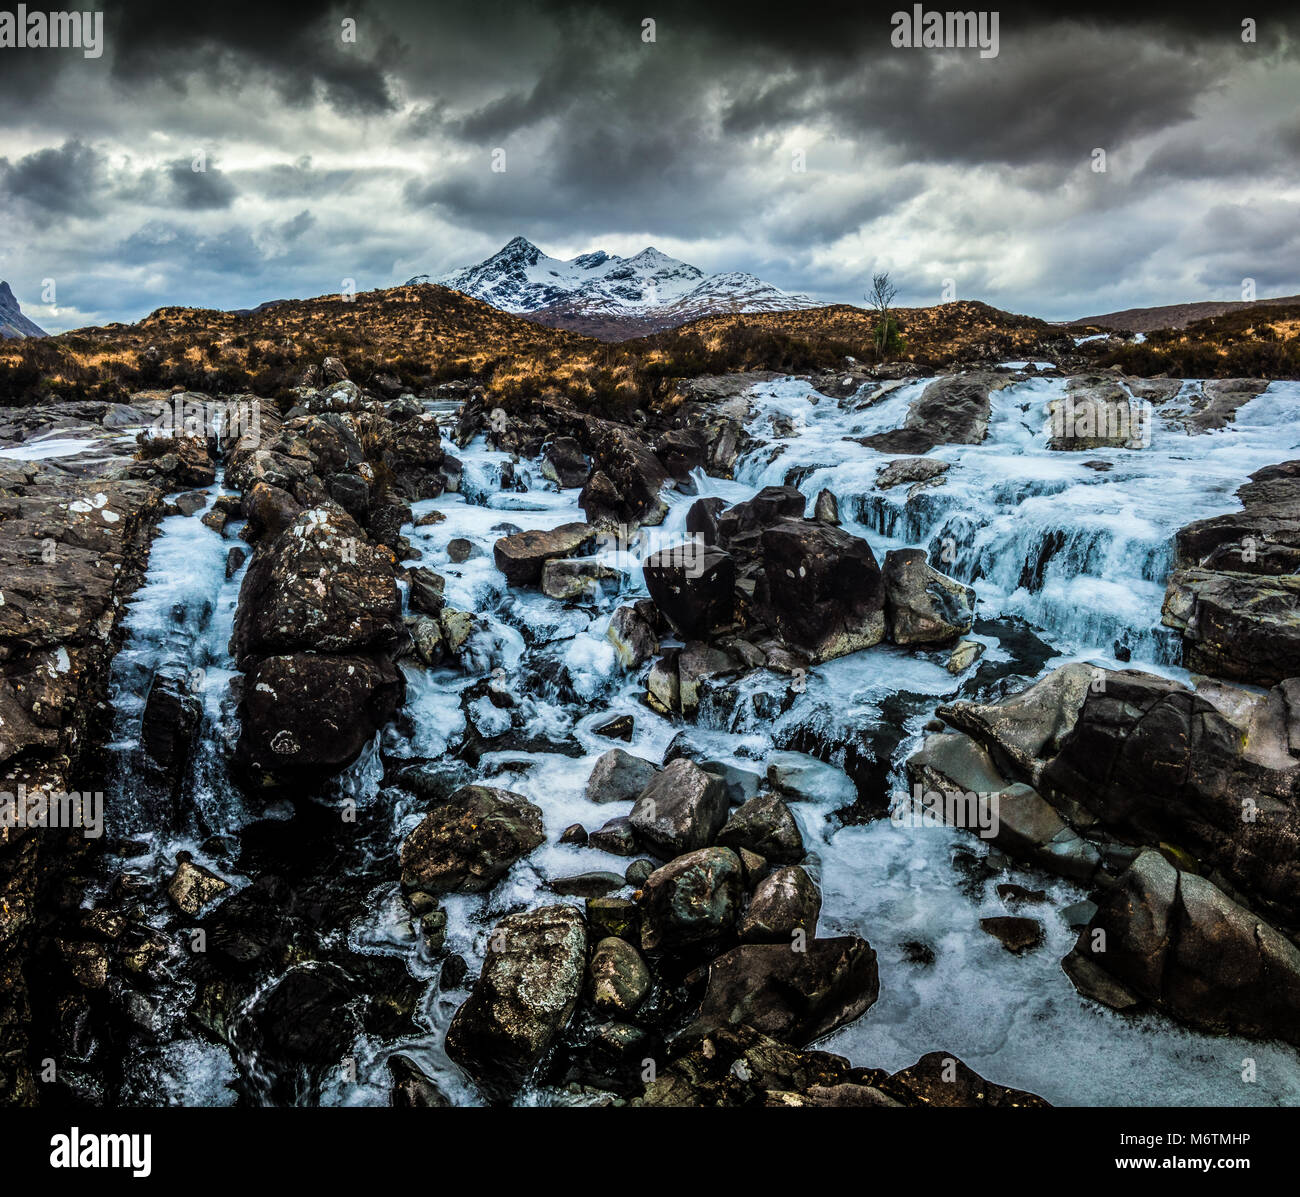 Frozen Waterfall, Cuillin Mountains - Stock Image